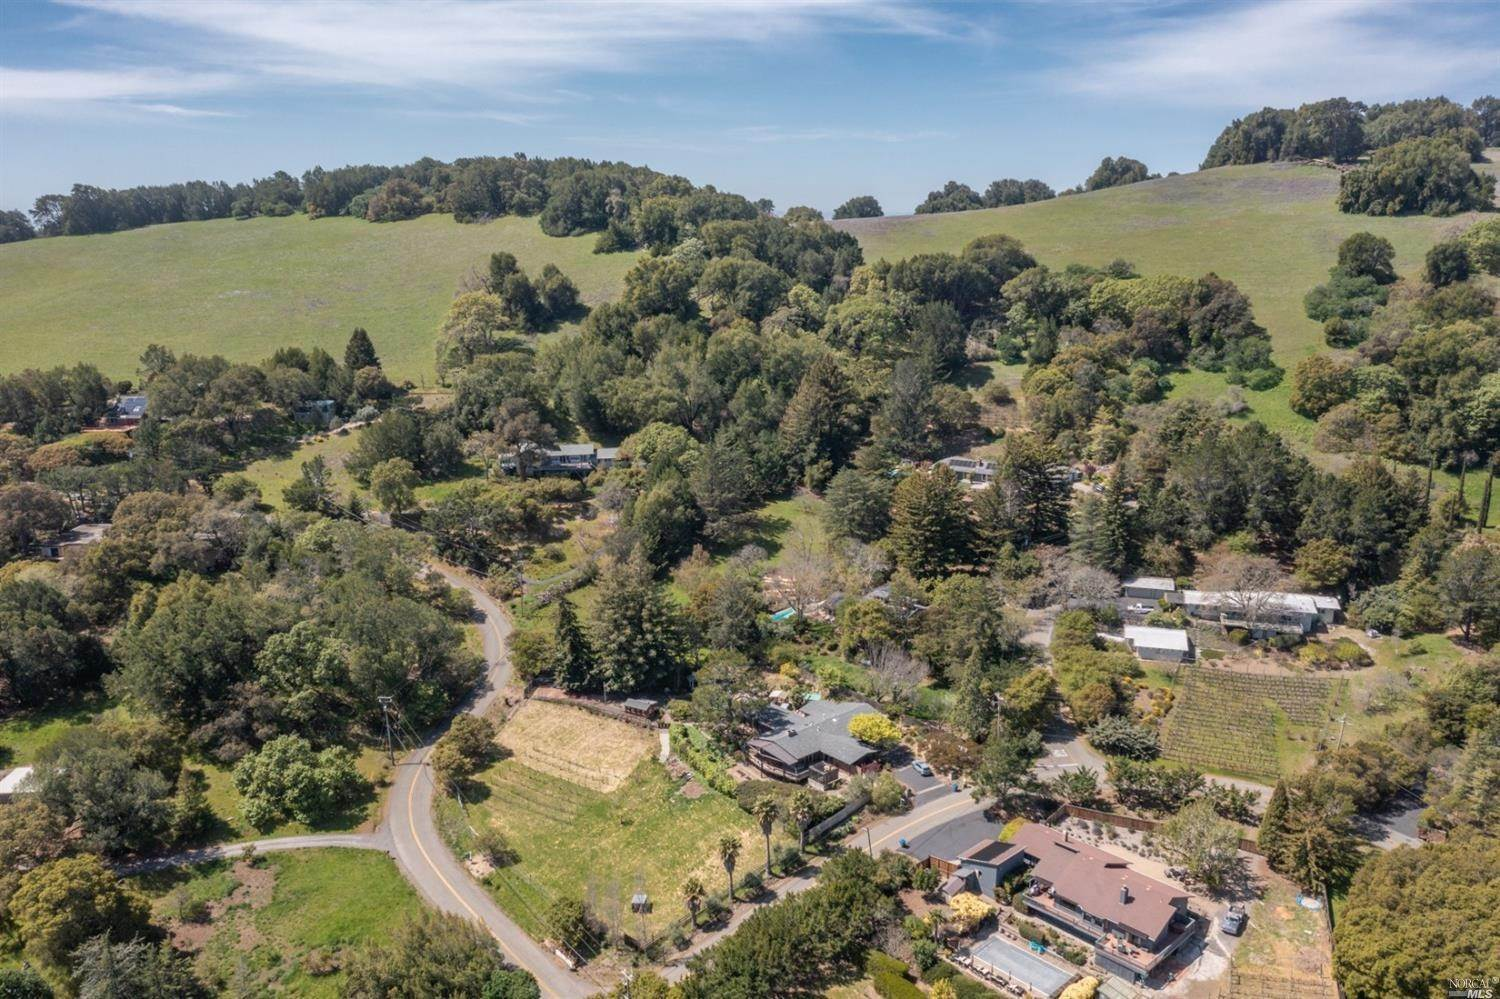 Property for Sale at 4516 Grove Street Sonoma, California 95476 United States